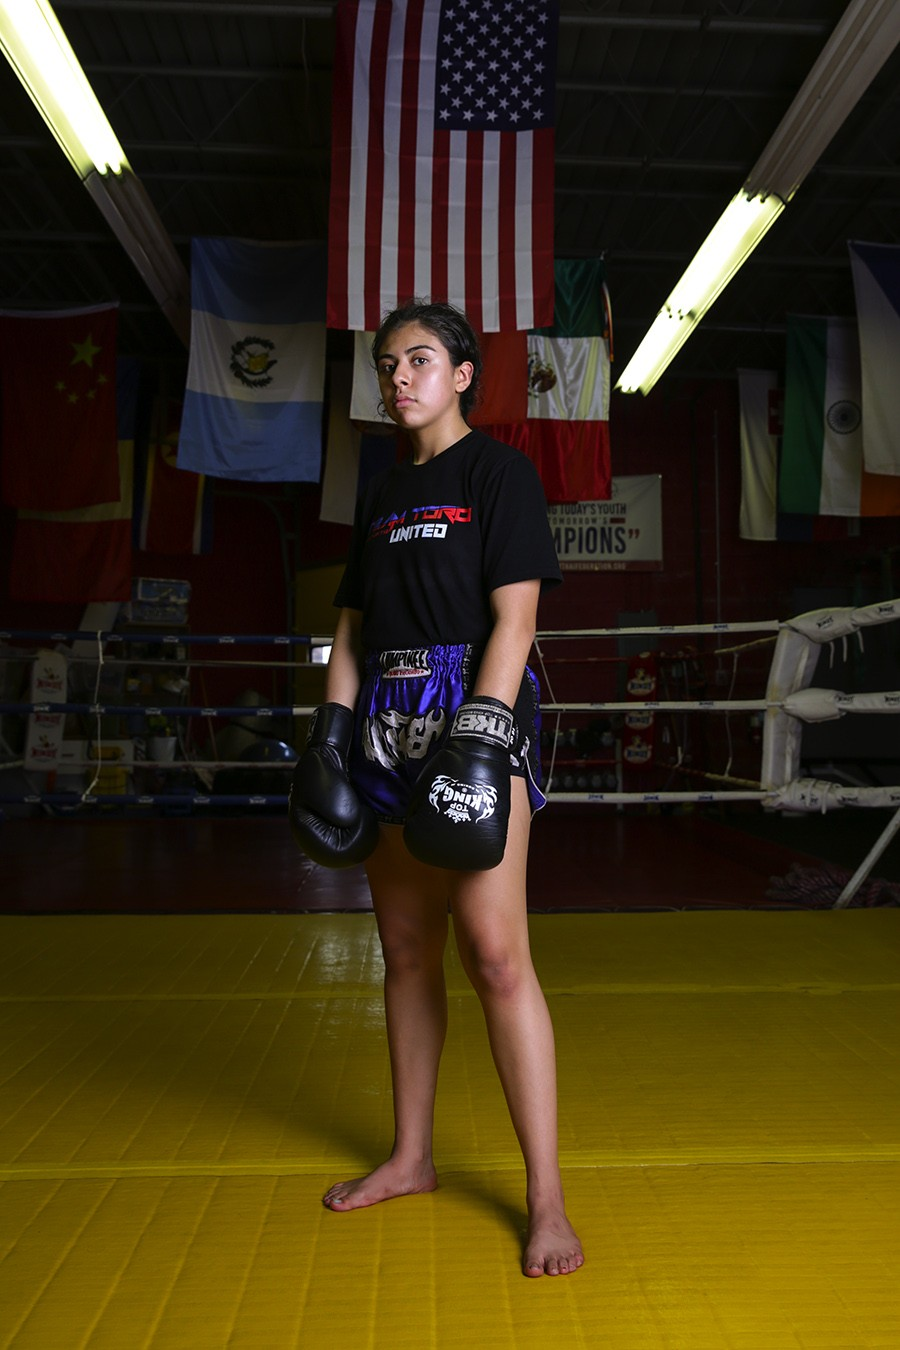 """Arianna Shastri, 16, of Team Toro Janjira  [On fighting in Thailand] """"It was definitely different because we, me and my teammate, were the only American[s], and even on the fight card they didn't have the American flag just because they didn't know where we we're from. It was very nerve-wracking because I was the first fight of the entire card. It clicked for me when I went inside [the ring], like, 'Oh, I'm actually doing this.' This was my first fight without shin guards, as well. I've never fought without shin guards and so it was a new experience, but it was really fun. A lot of things were happening at once. It was like, 'OK, this is happening. I need to like get my shit together like right now.'"""" [On winning] """"When they raised my hand I was like, I just won in Thailand against a Thai girl. I was very happy; it was a very happy experience. I didn't go with my mom or parents. It was just me, my coach, and my teammate. Now, I'm getting ready to go to Turkey with the national team."""" - GEOFF STELLFOX"""